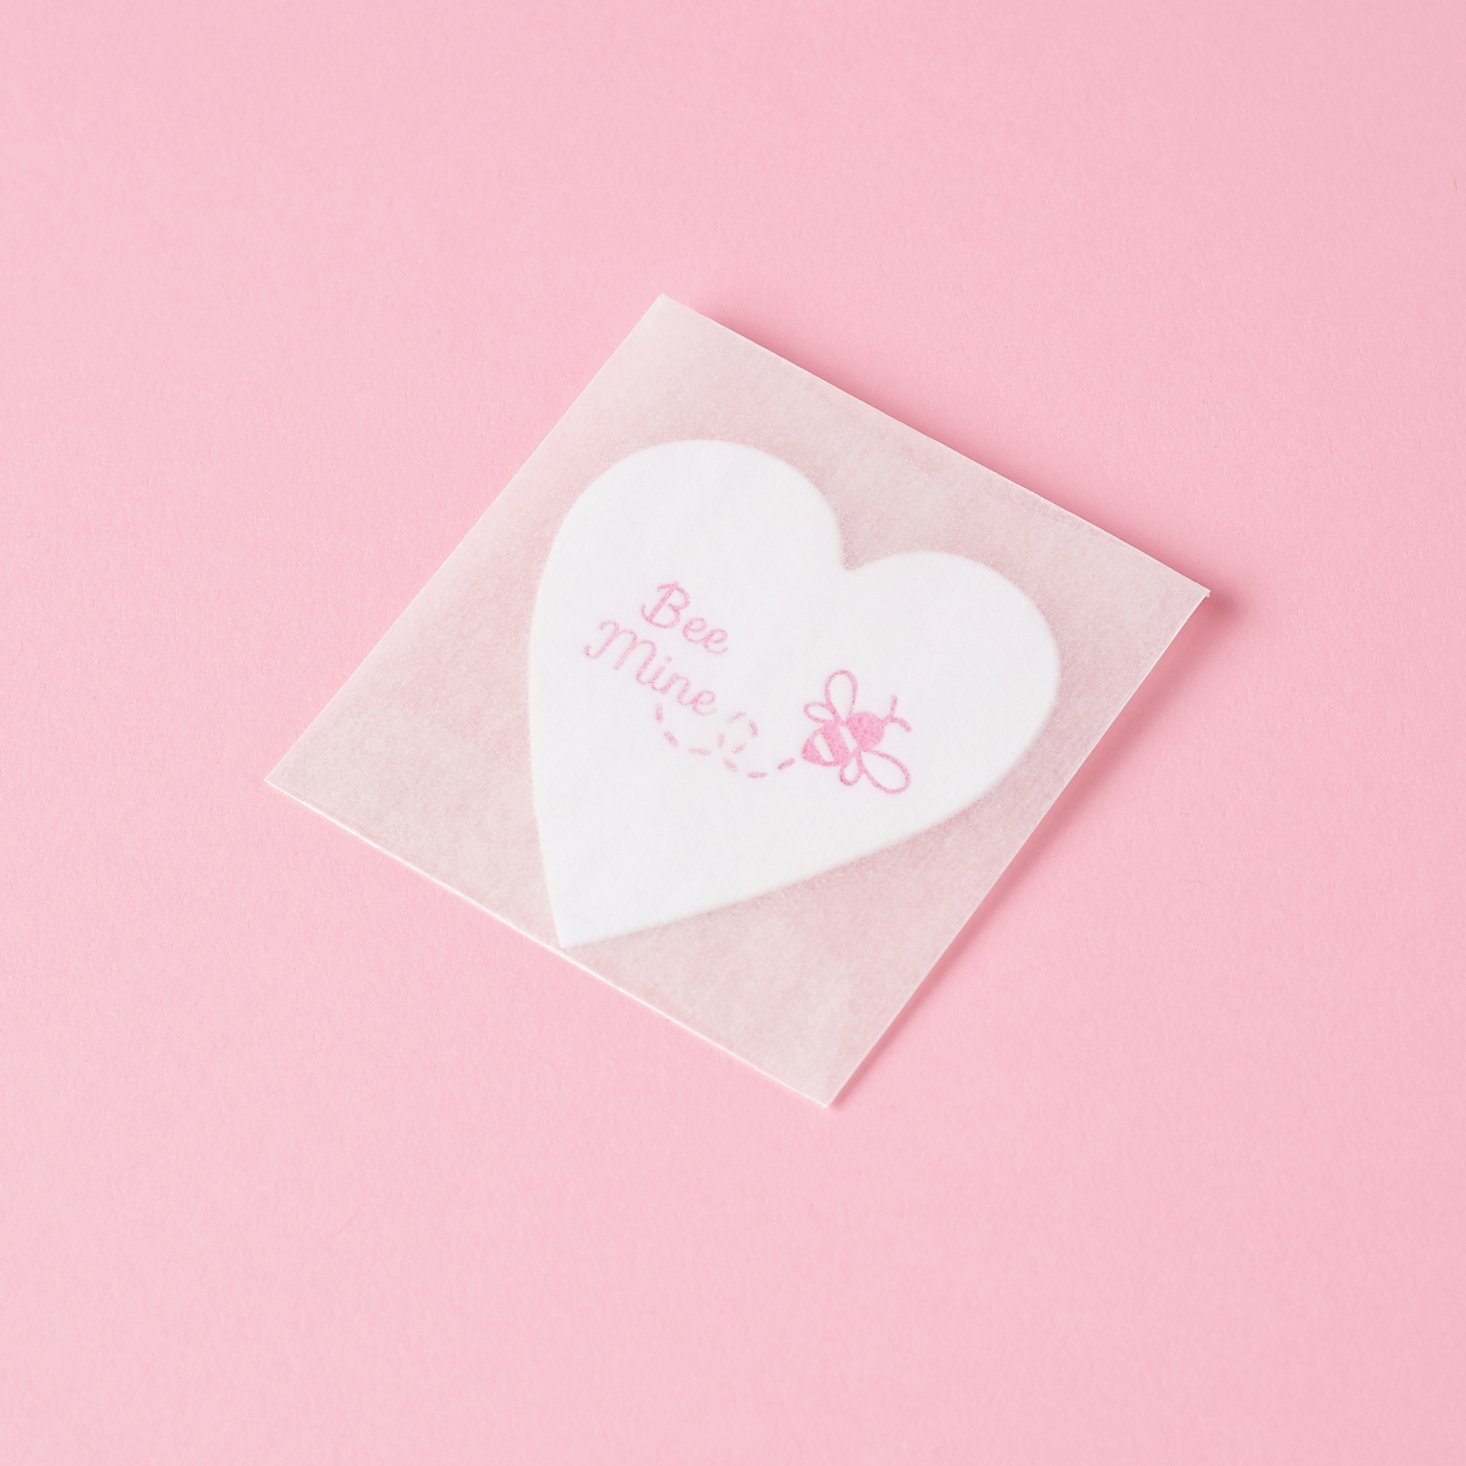 Check out the Idea Chic Stationery box for January 2017!